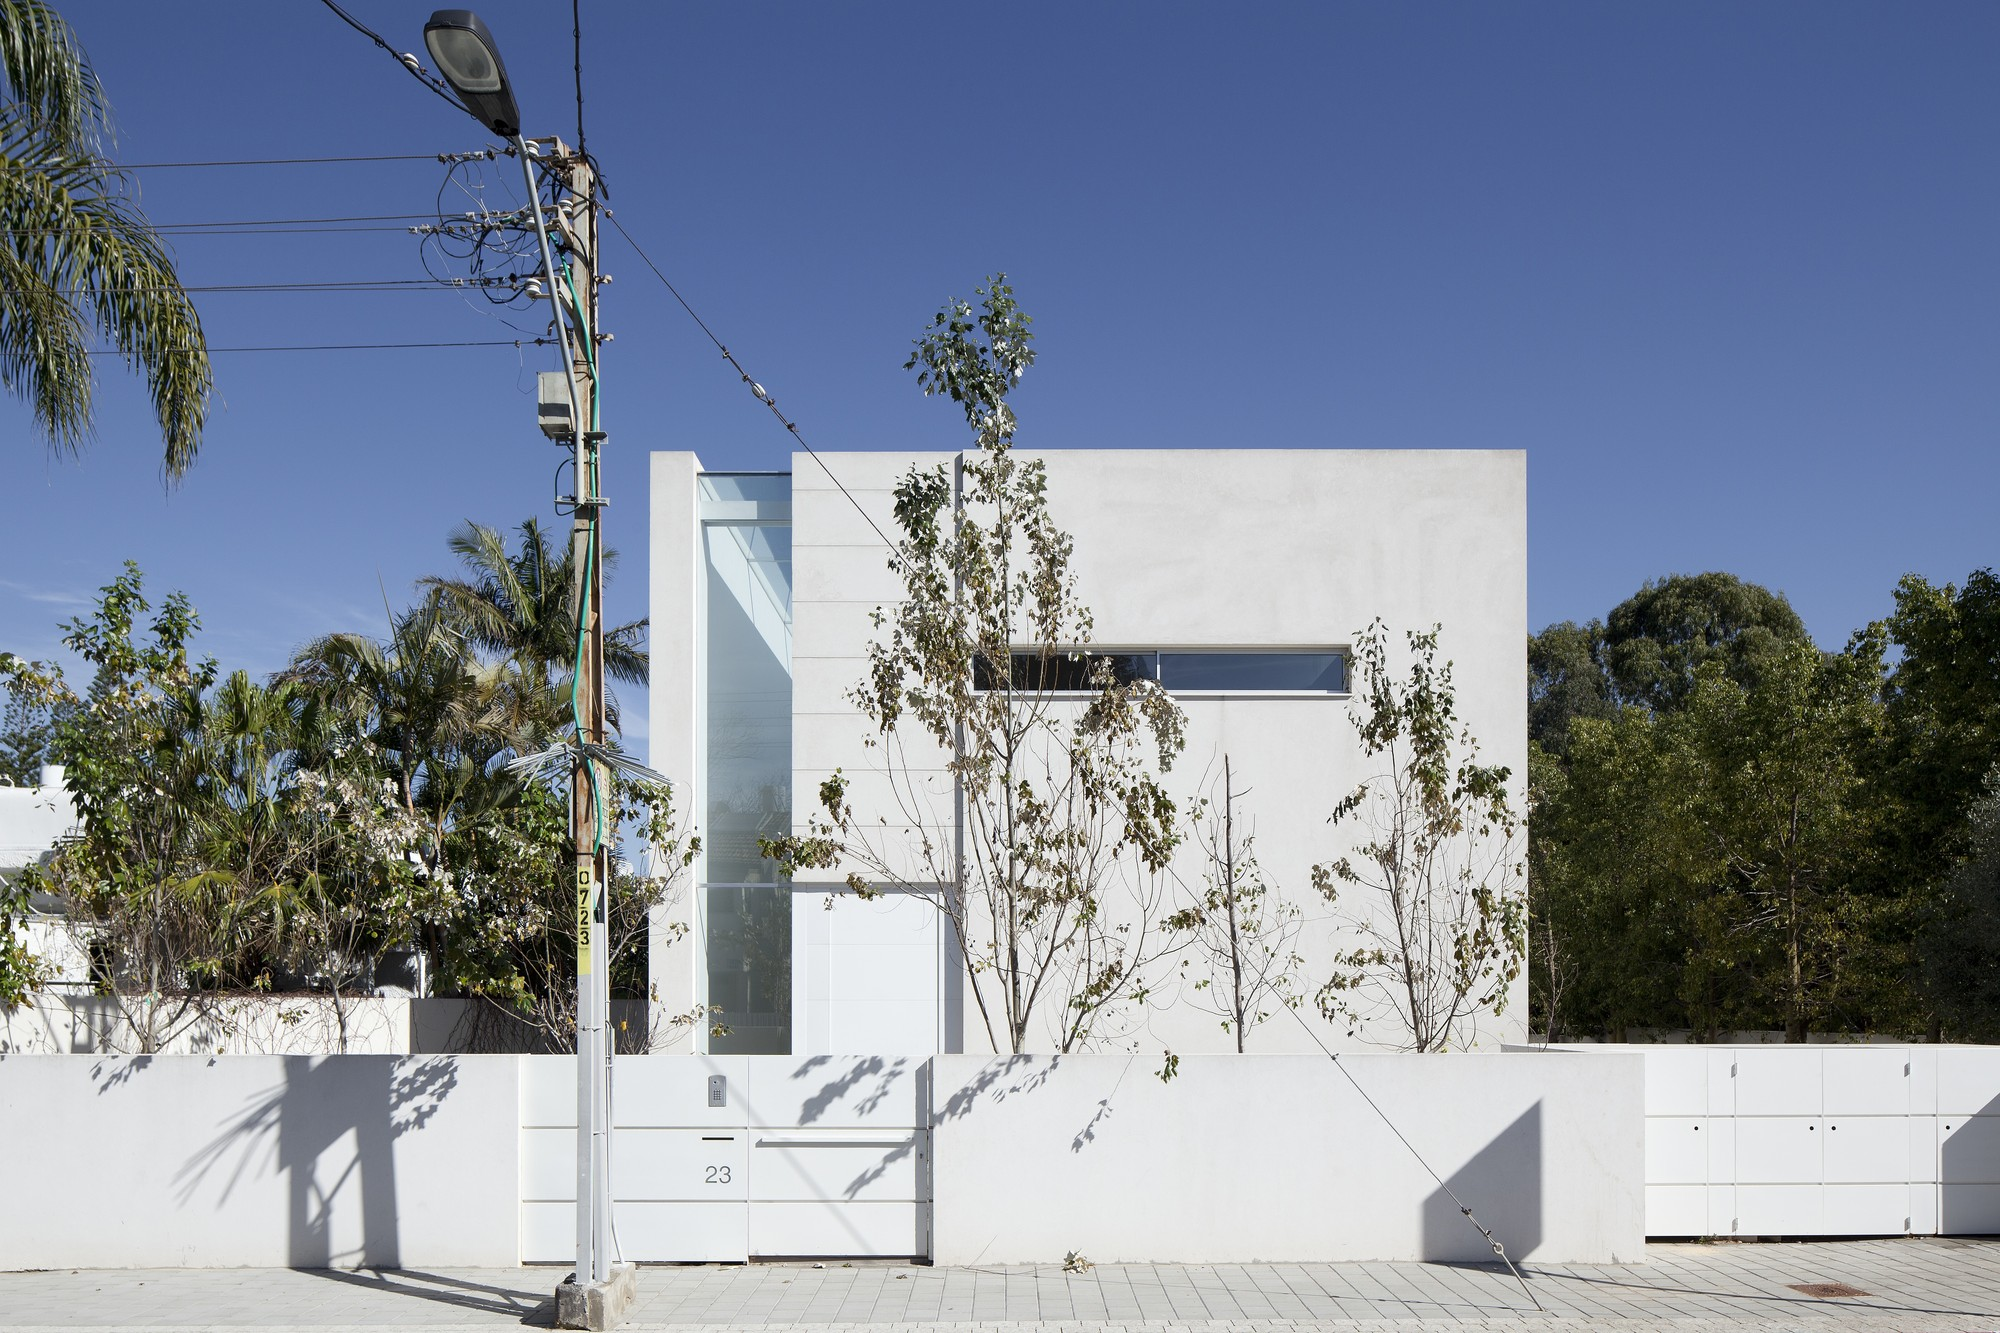 G House / Axelrod Architects + Pitsou Kedem Architect, © Amit Geron